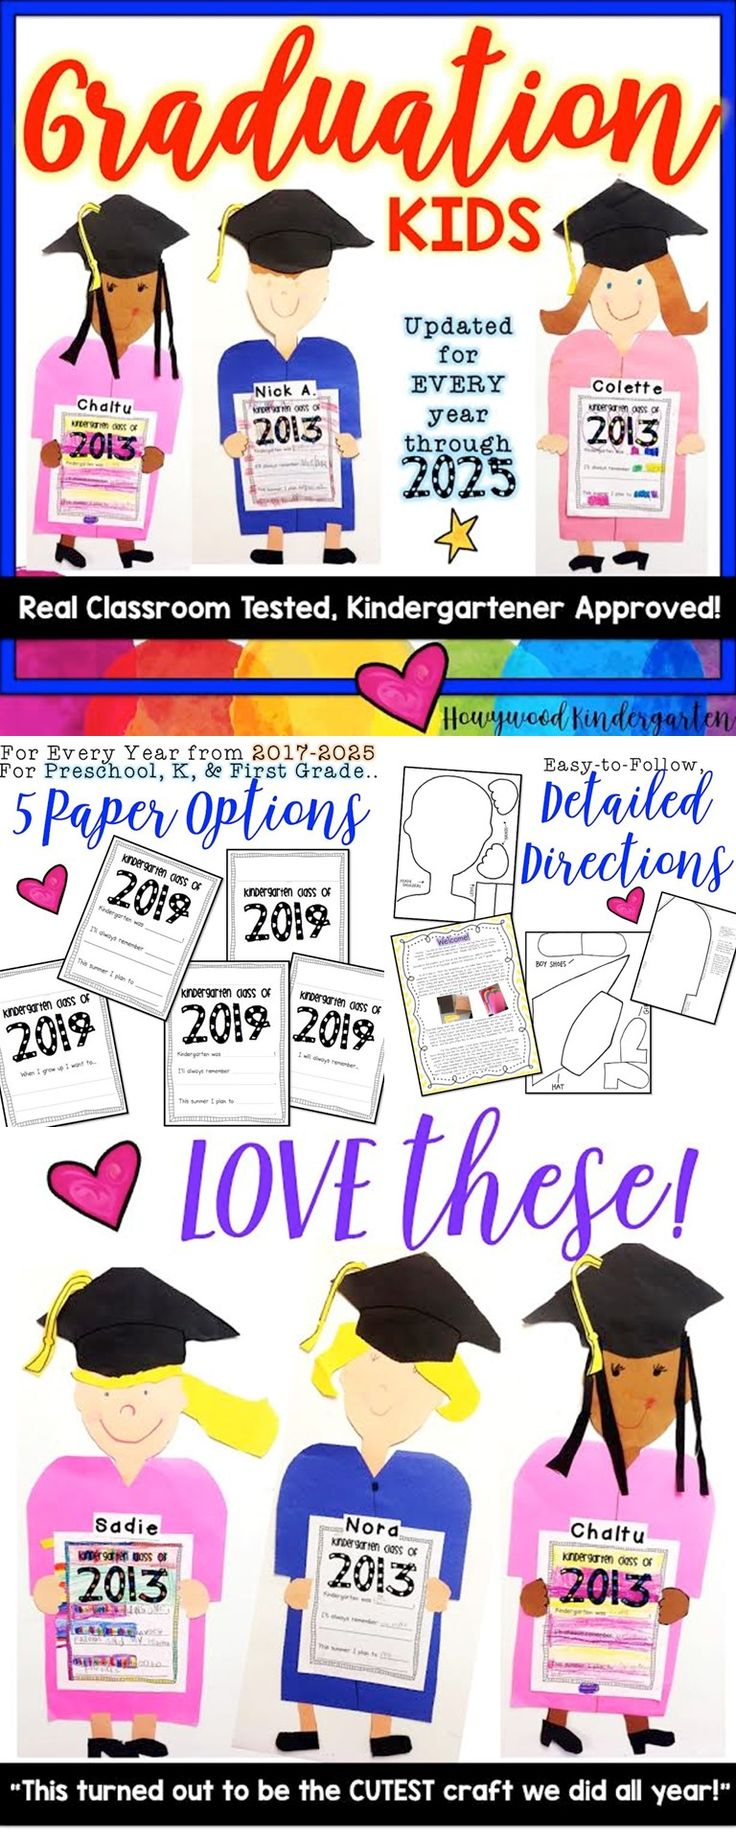 If you're looking for an adorable end of the year project, you need to check this out! These graduation kids make a fabulous project and/or hallway display that will be the perfect addition to your celebration!